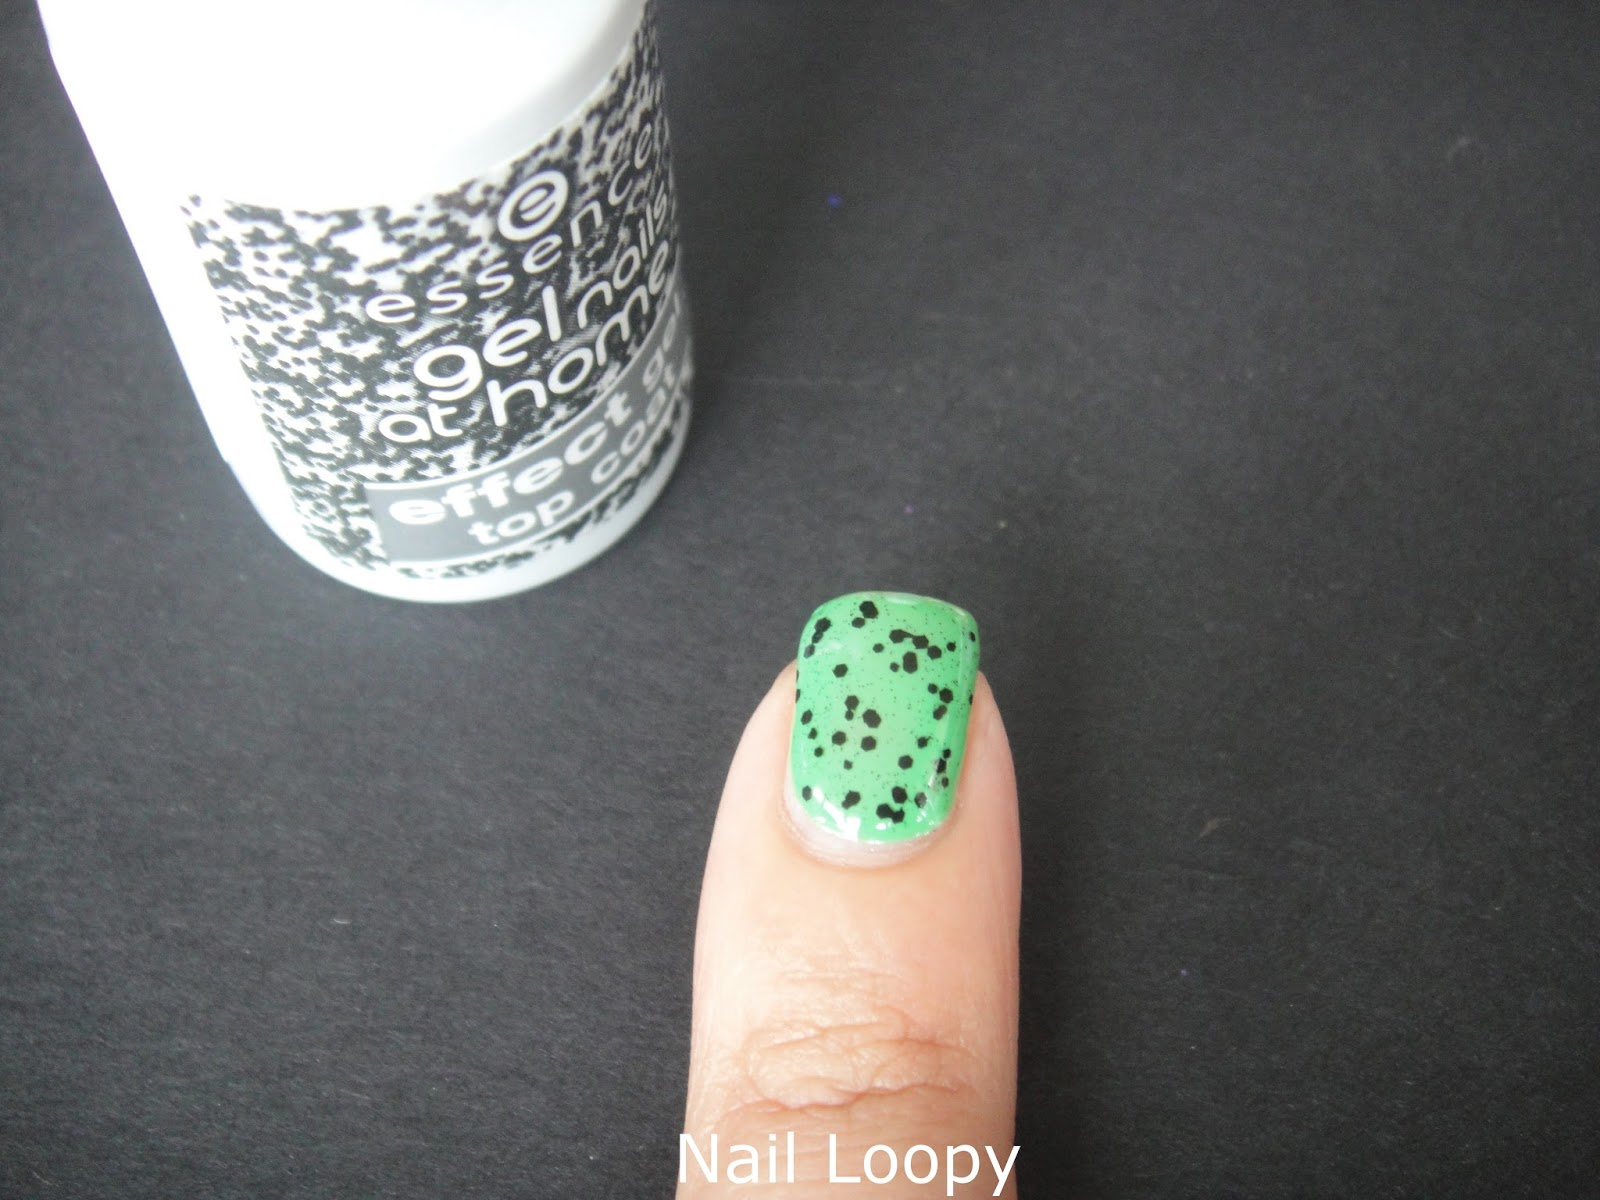 nail loopy: ESSENCE GEL NAILS AT HOME TUTORIAL & REVIEW